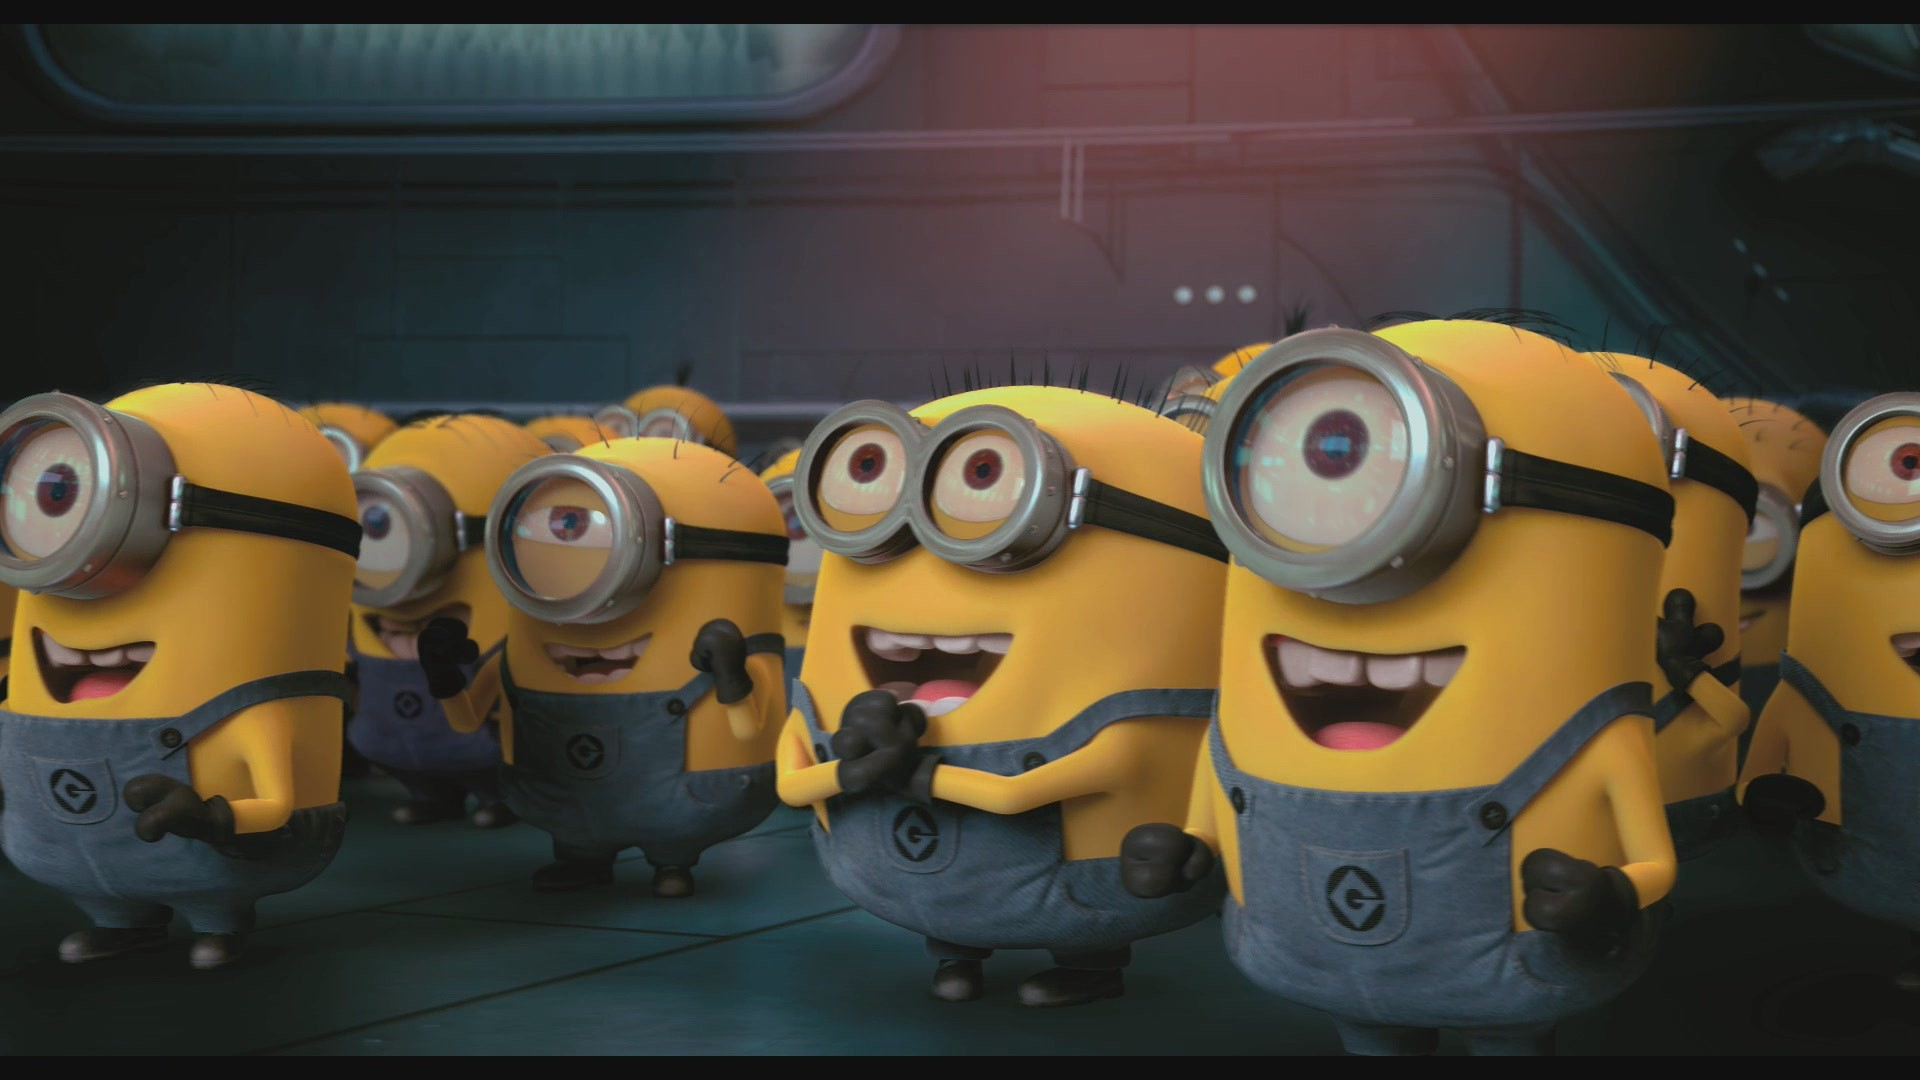 minions-Minions-in-Despicable-Me-HD-wallpaper-wpc9007677